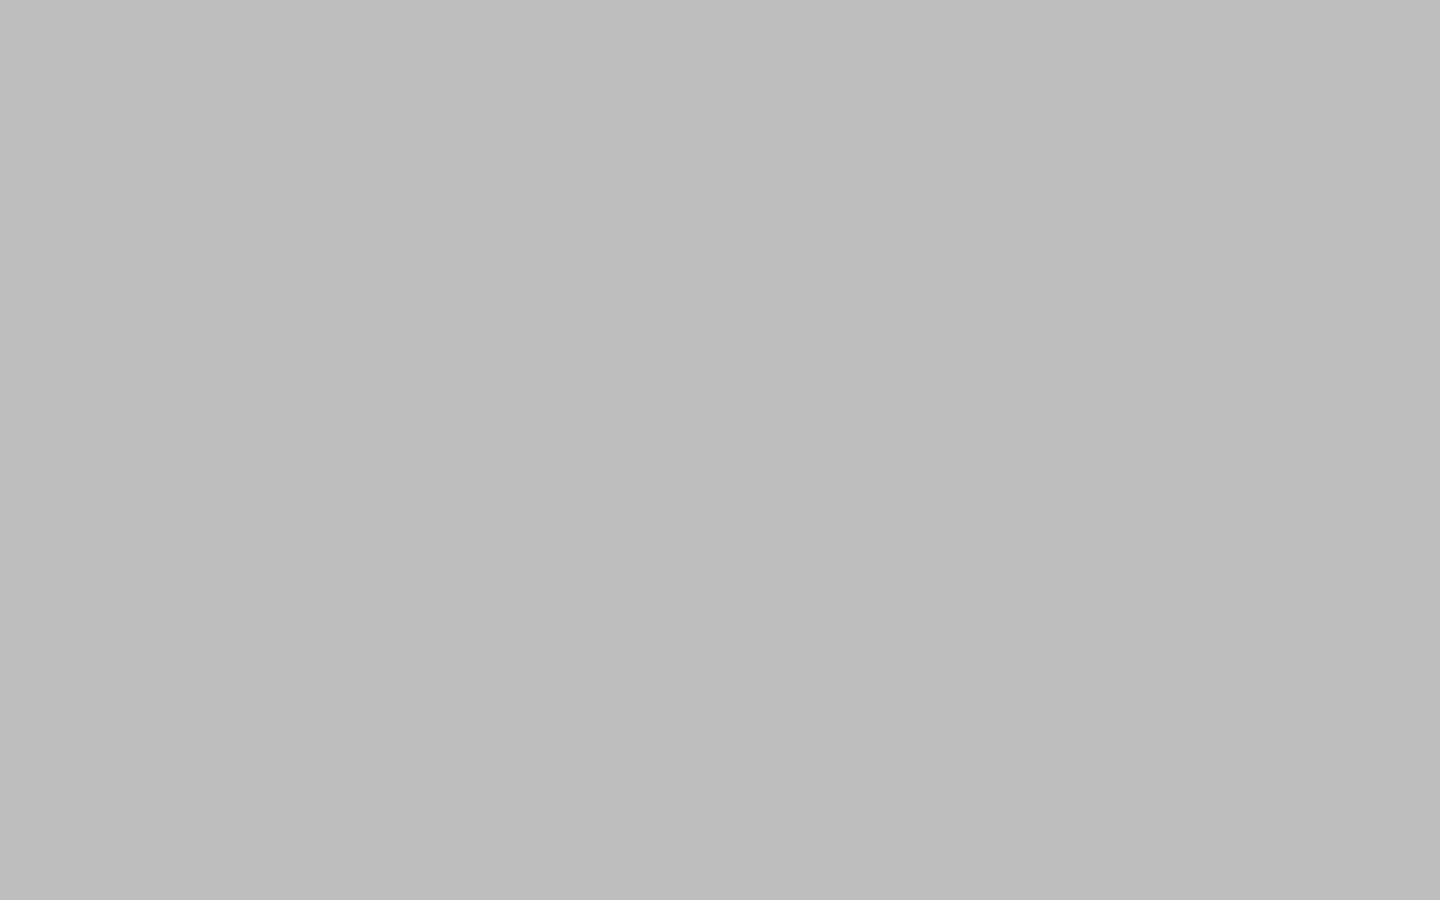 1440x900 Gray X11 Gui Gray Solid Color Background